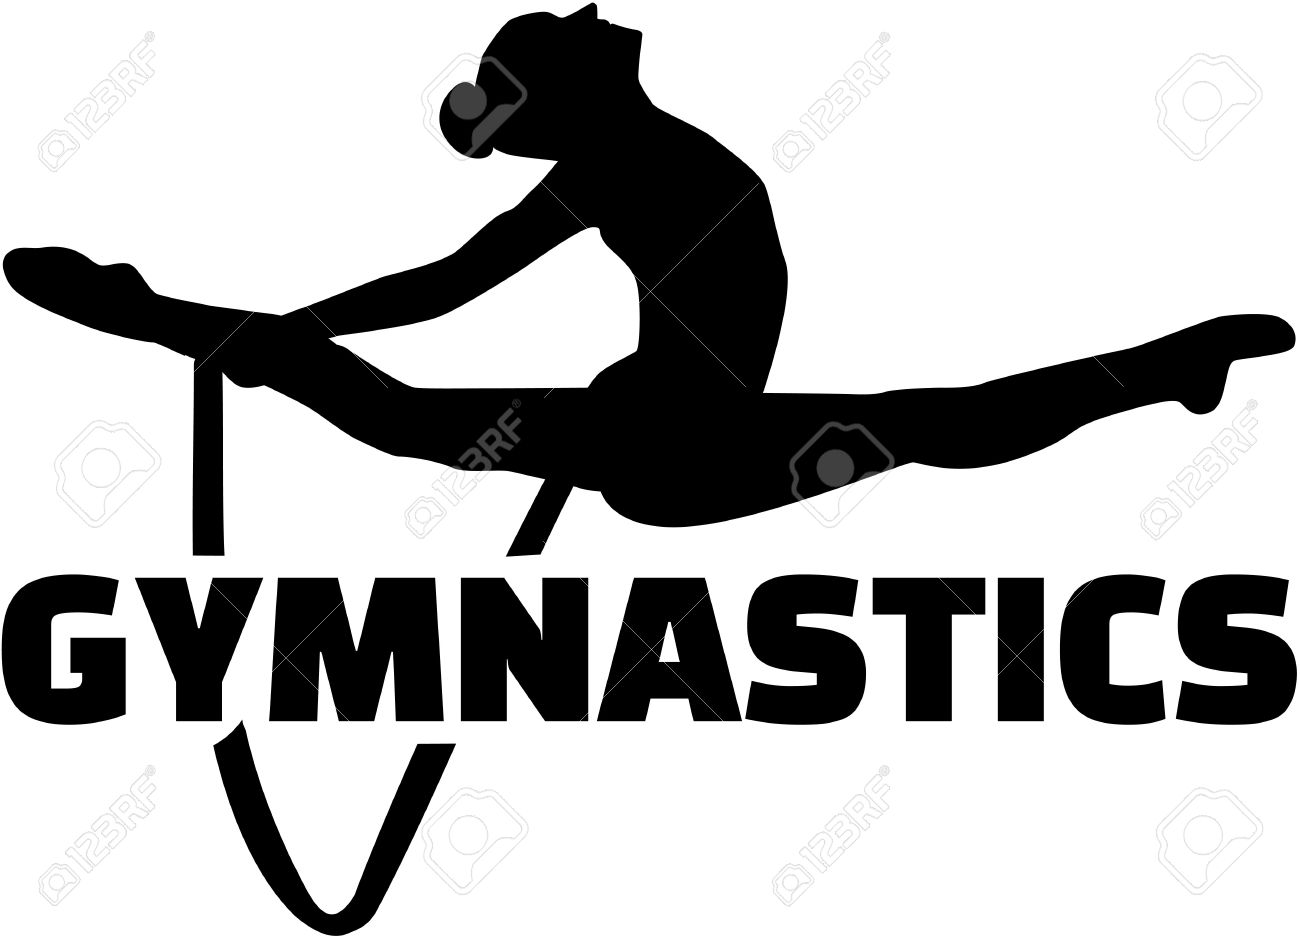 Gymnastics Word With Woman Exercise With Rope Royalty Free.